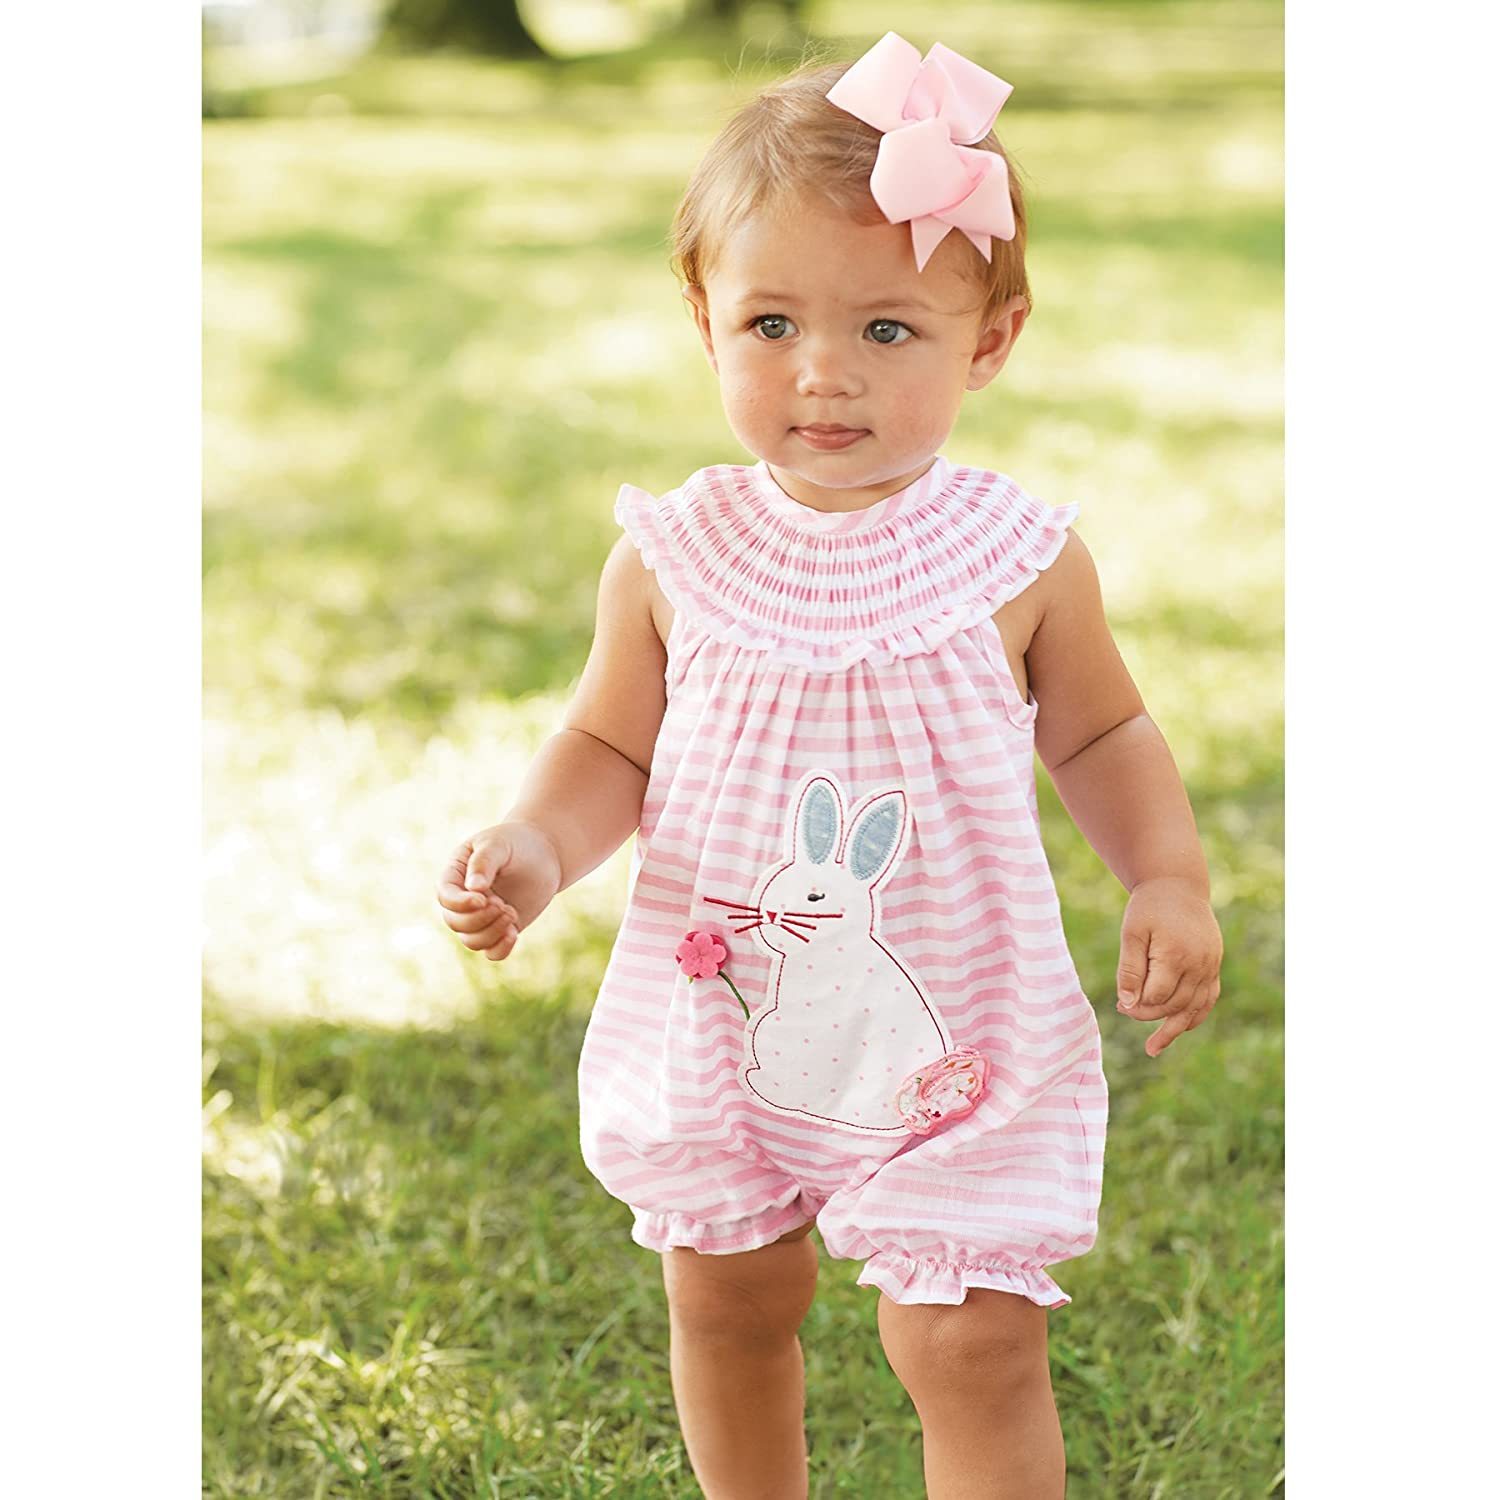 Mud Baby Clothes Newest and Cutest Baby Clothing Collection by Due